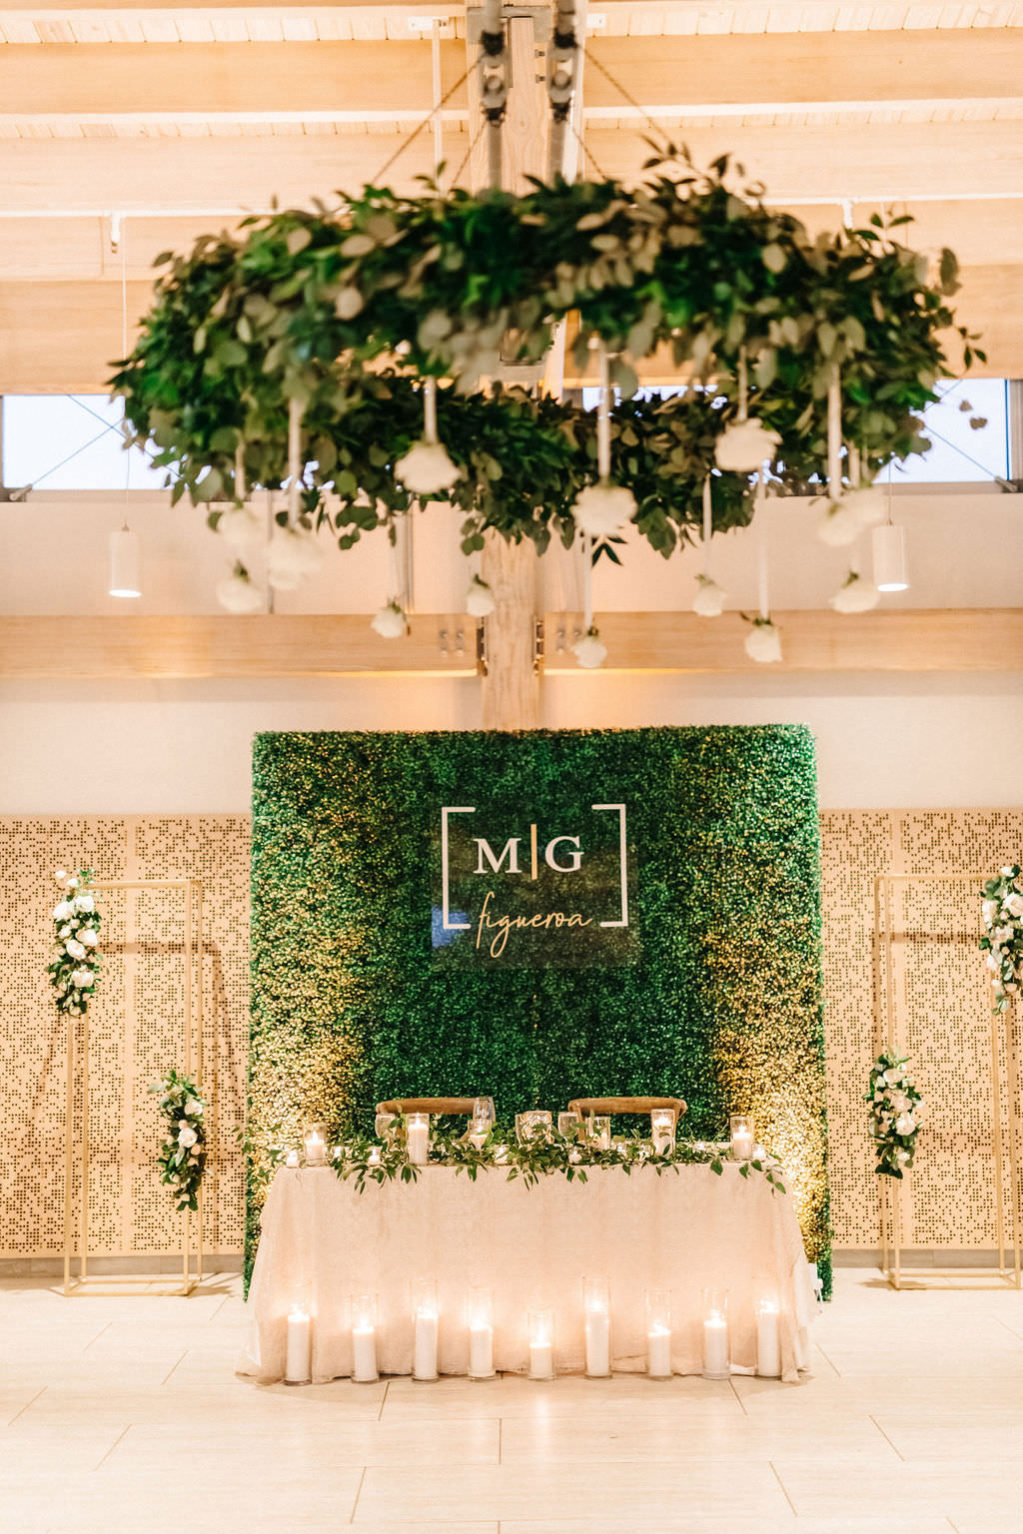 Luxurious, Elegant Wedding Reception and Decor, Sweetheart Table at Garden Inspired Wedding Reception, Suspended Hanging White Rose Floral Arrangement, Greenery Boxwood Wall with Custom Gold Initials, Gold Draping | Downtown Tampa Wedding Planner UNIQUE Weddings and Events | Florida Special Event Rental Company Over The Top Linens | Tampa Bay Decor Rental A Chair Affair